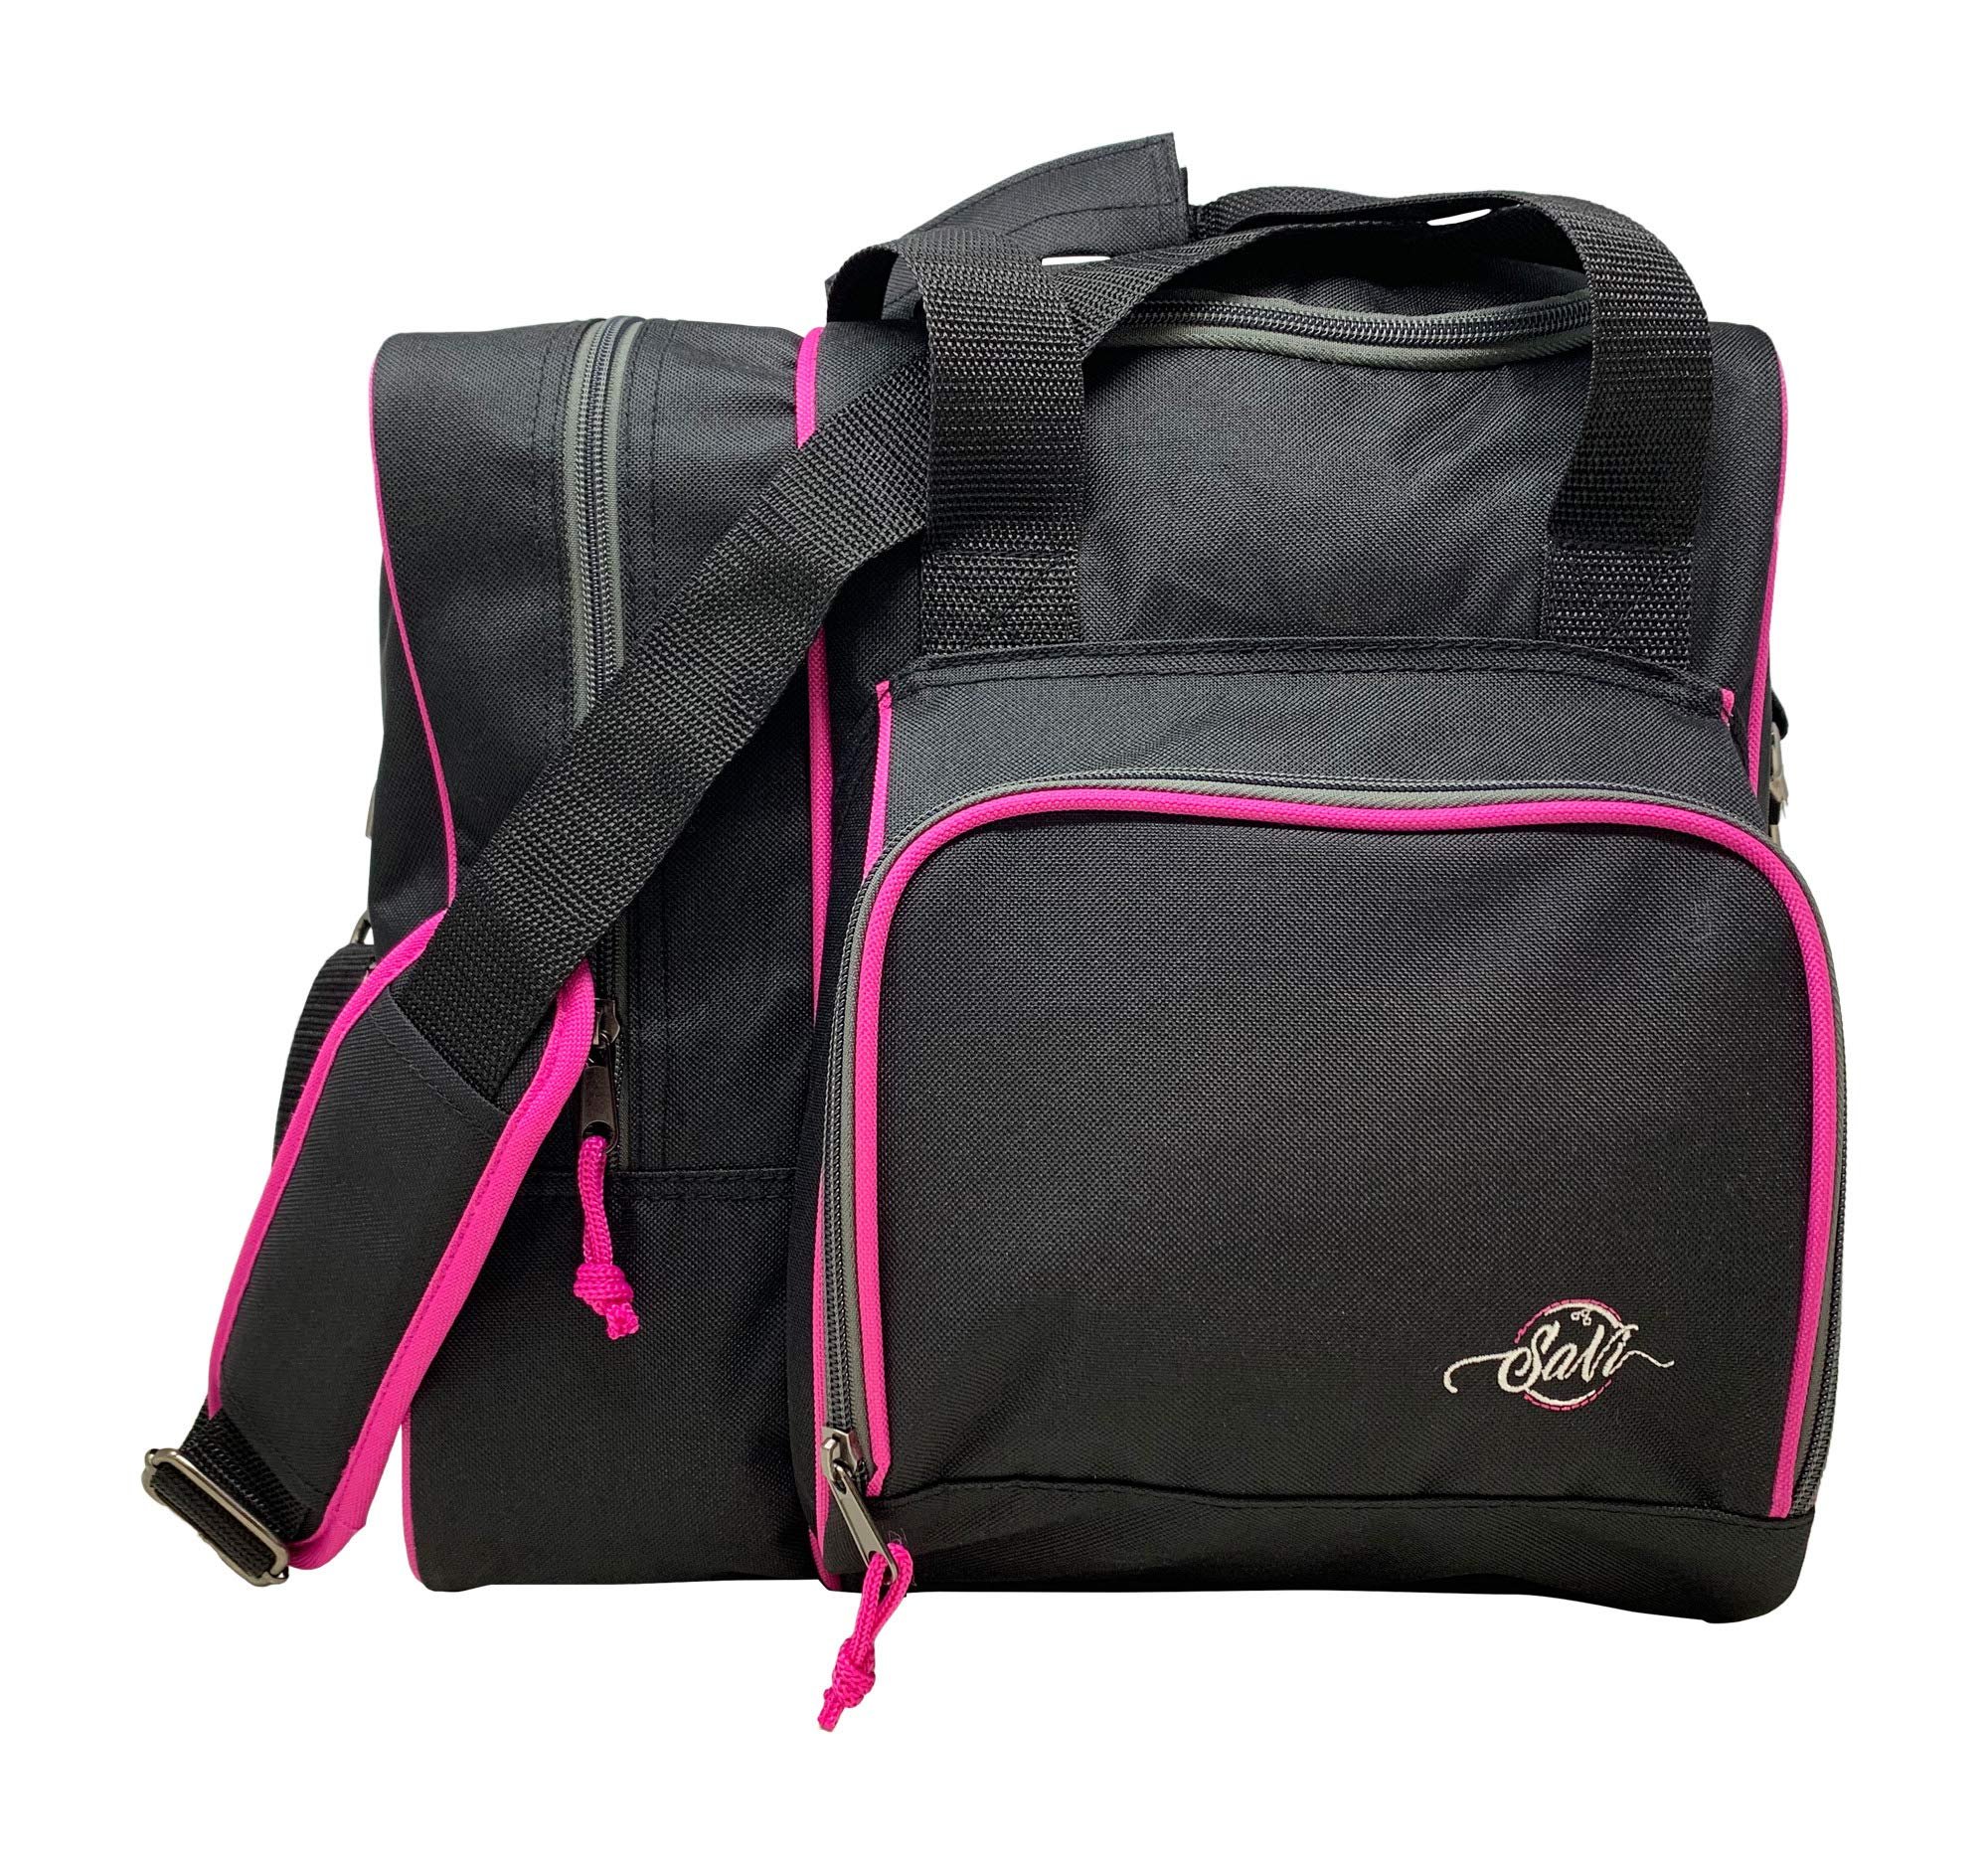 SaVi Single Deluxe Bowling Tote Bag Black/Pink Holds 1 Bowling Ball, 1 Pair of Bowling Shoes and A Front Accessory Pocket